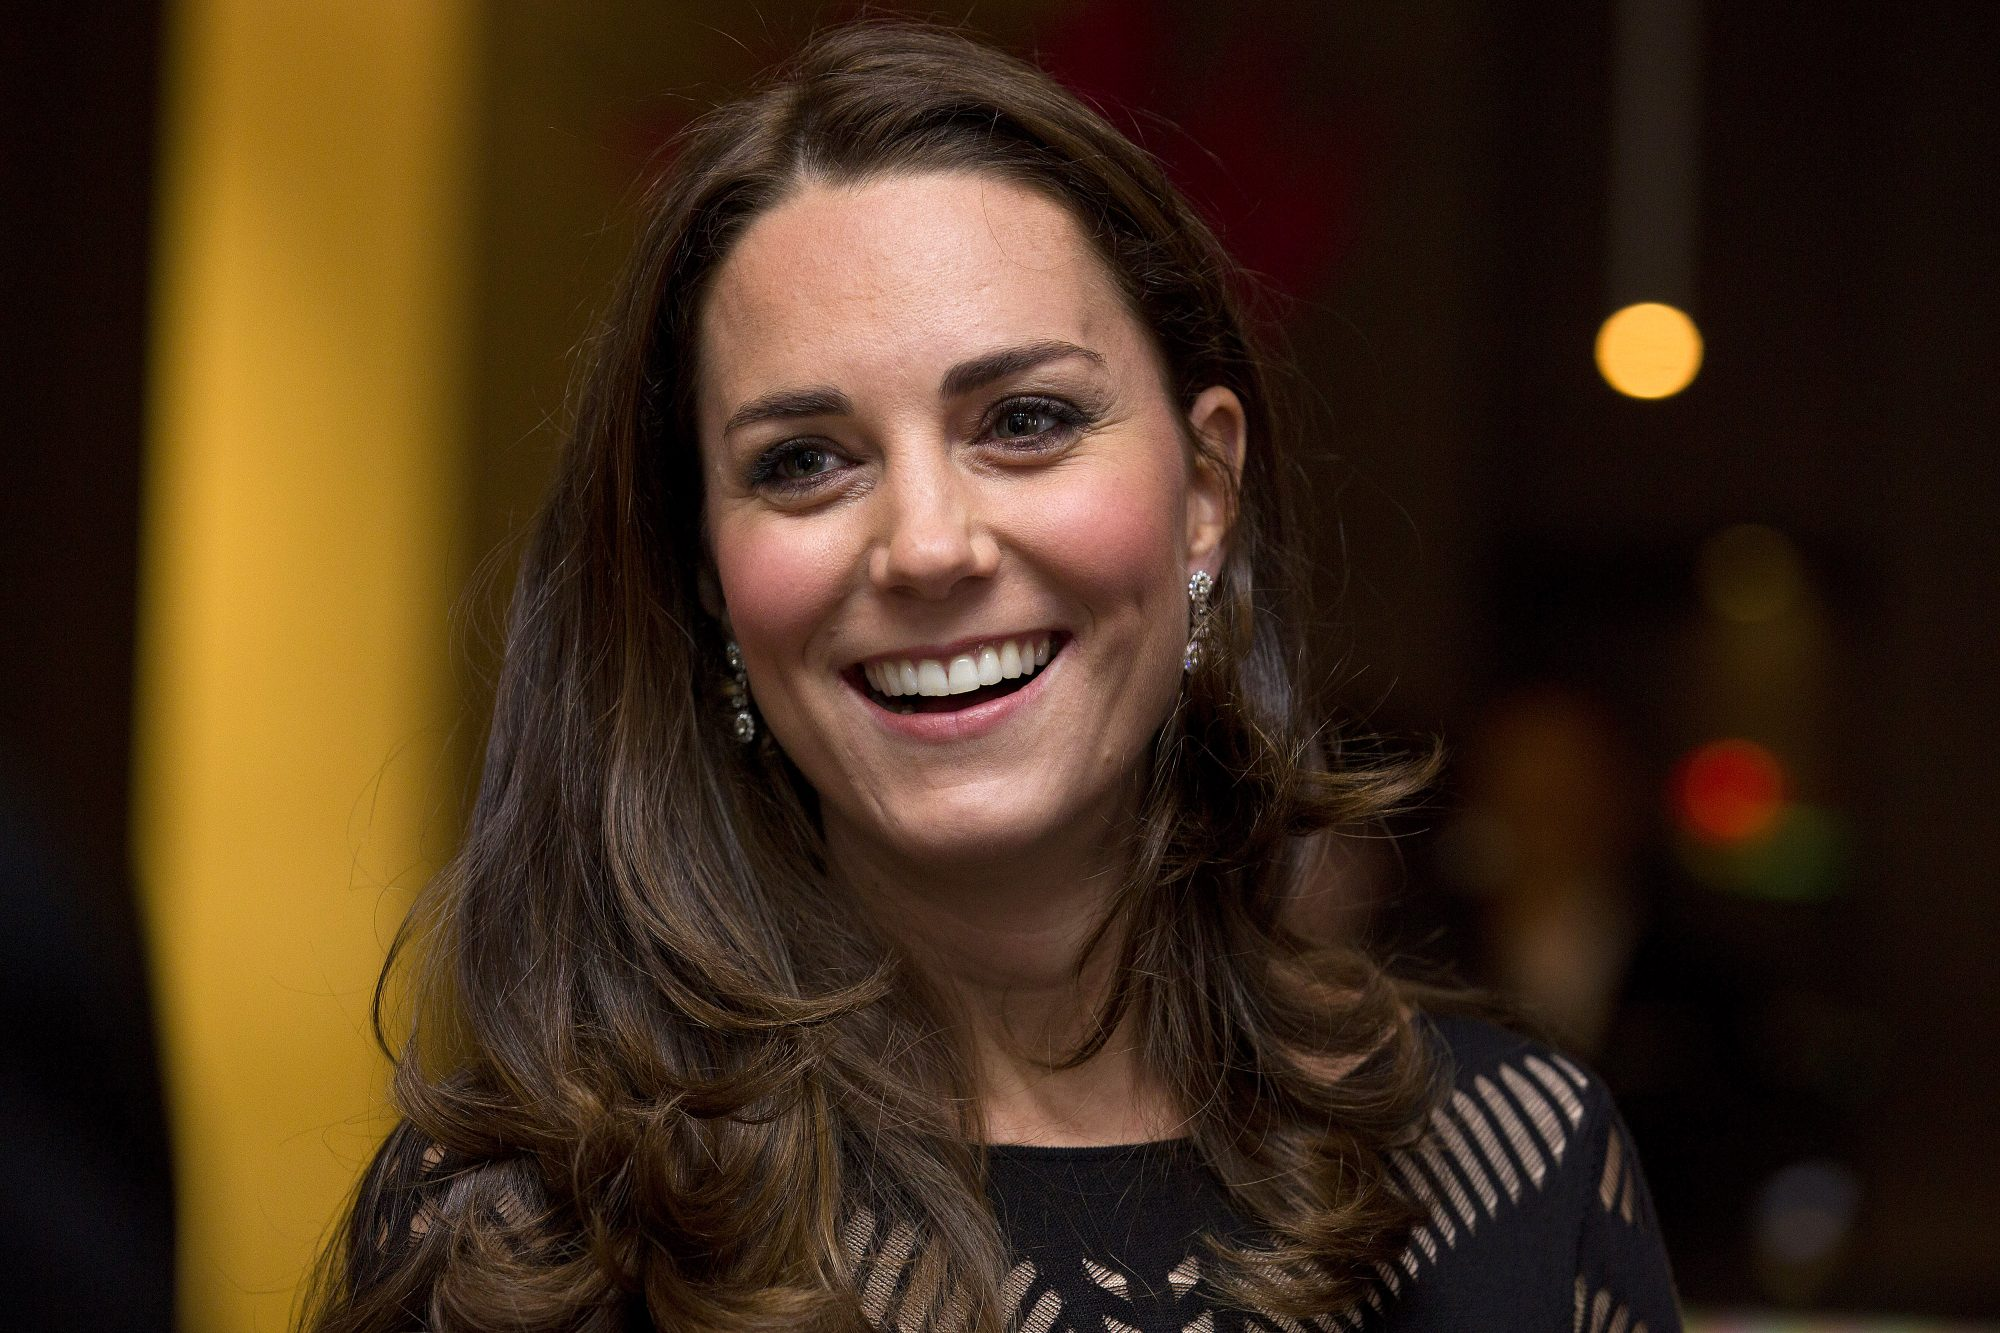 Catherine Elizabeth Cambridge Mountbatten-Windsor